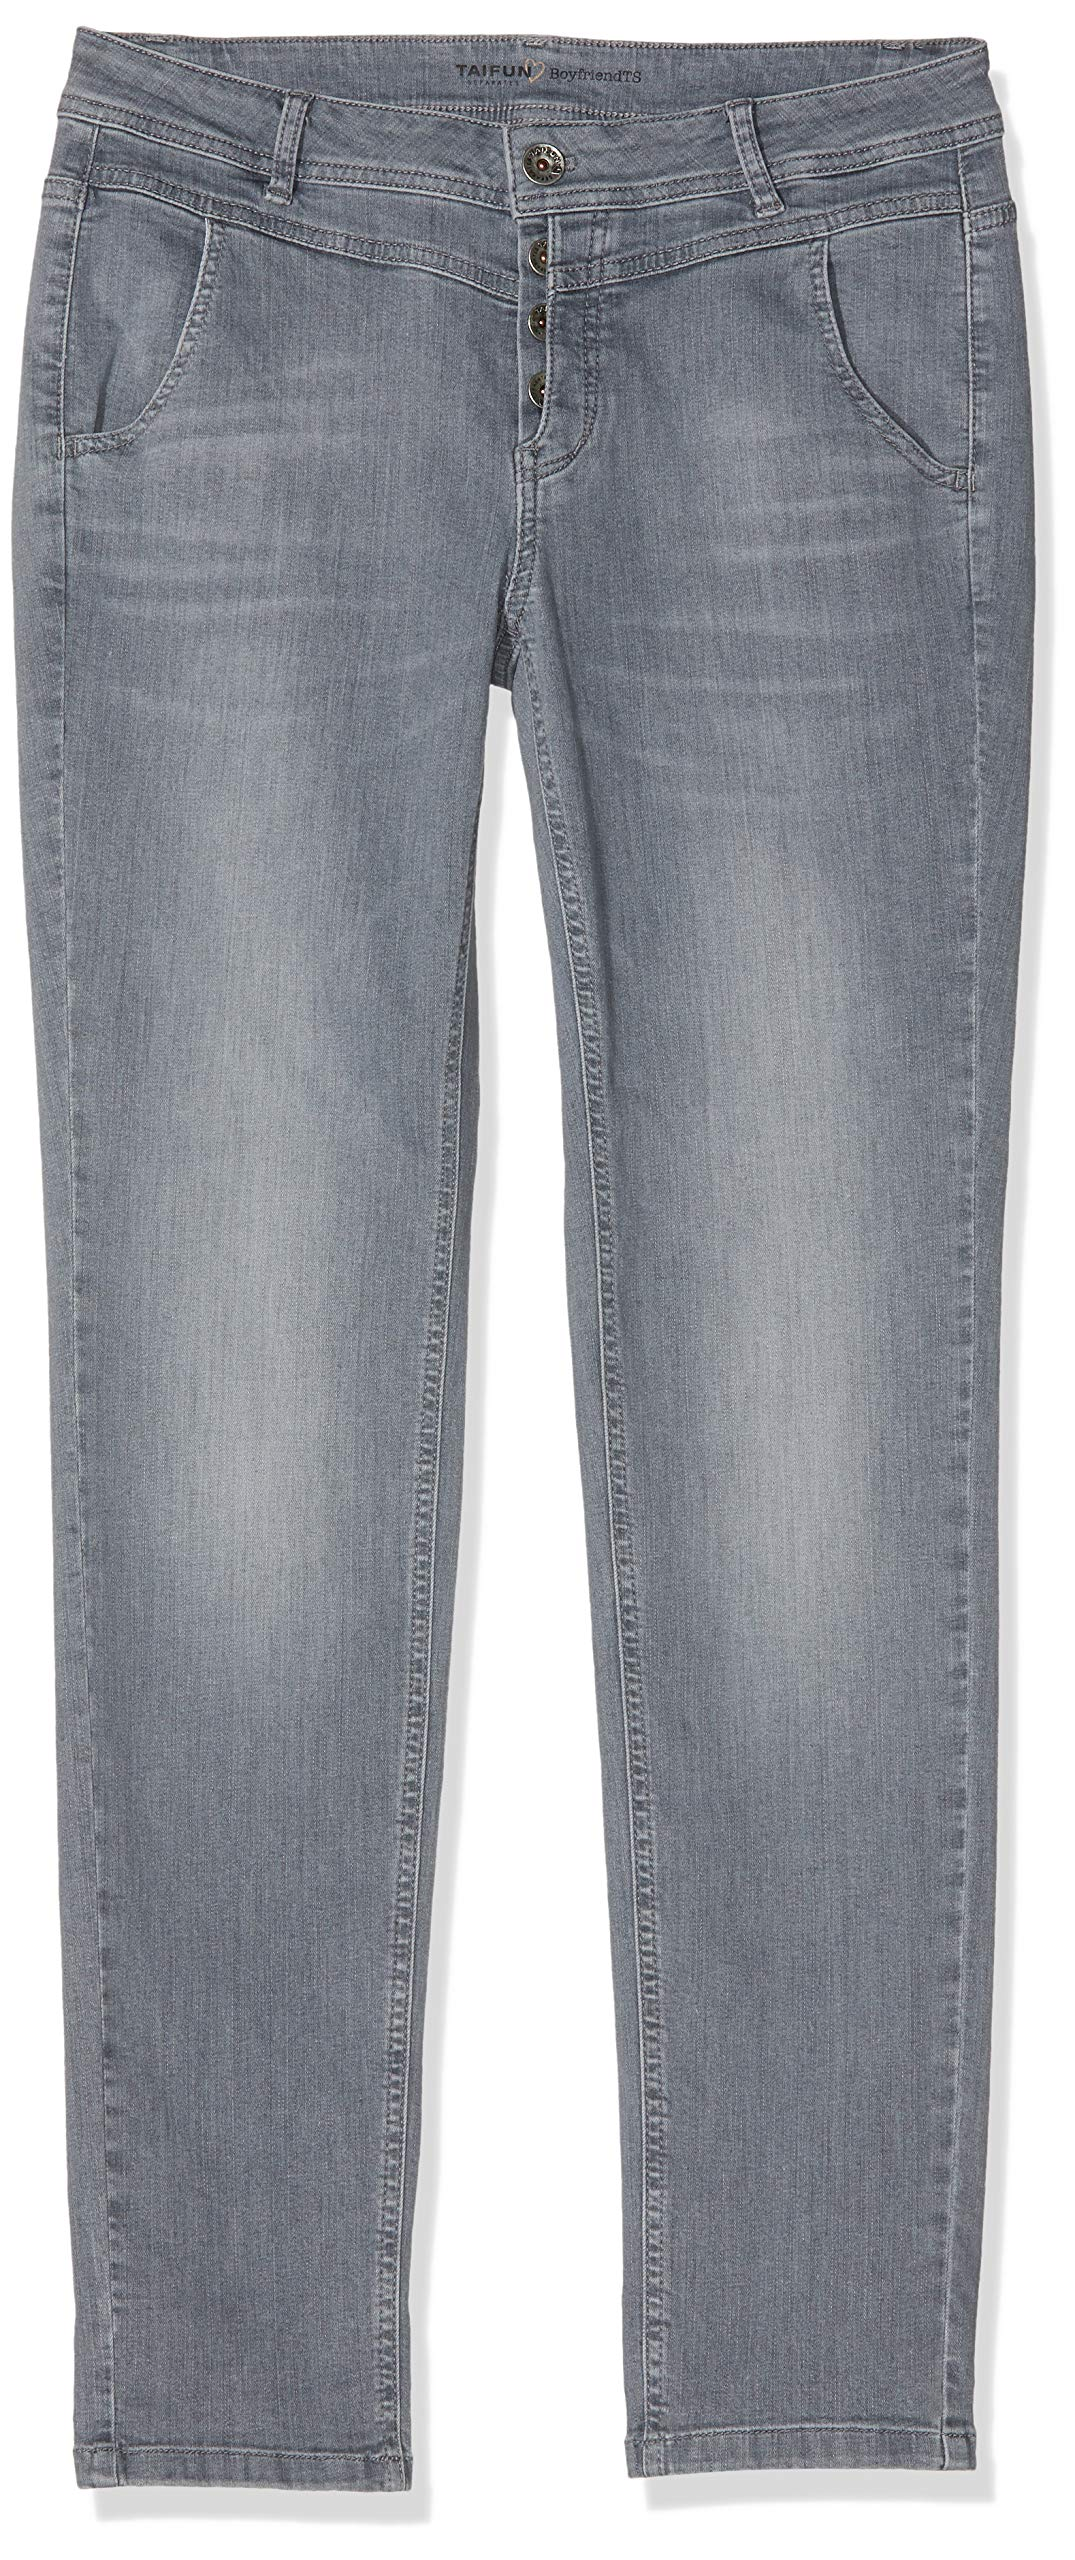 Fabricant38Femme DroitGrisgrey Taifun 19101 Jean 420014 1350040taille Denim Nn0m8yvOw